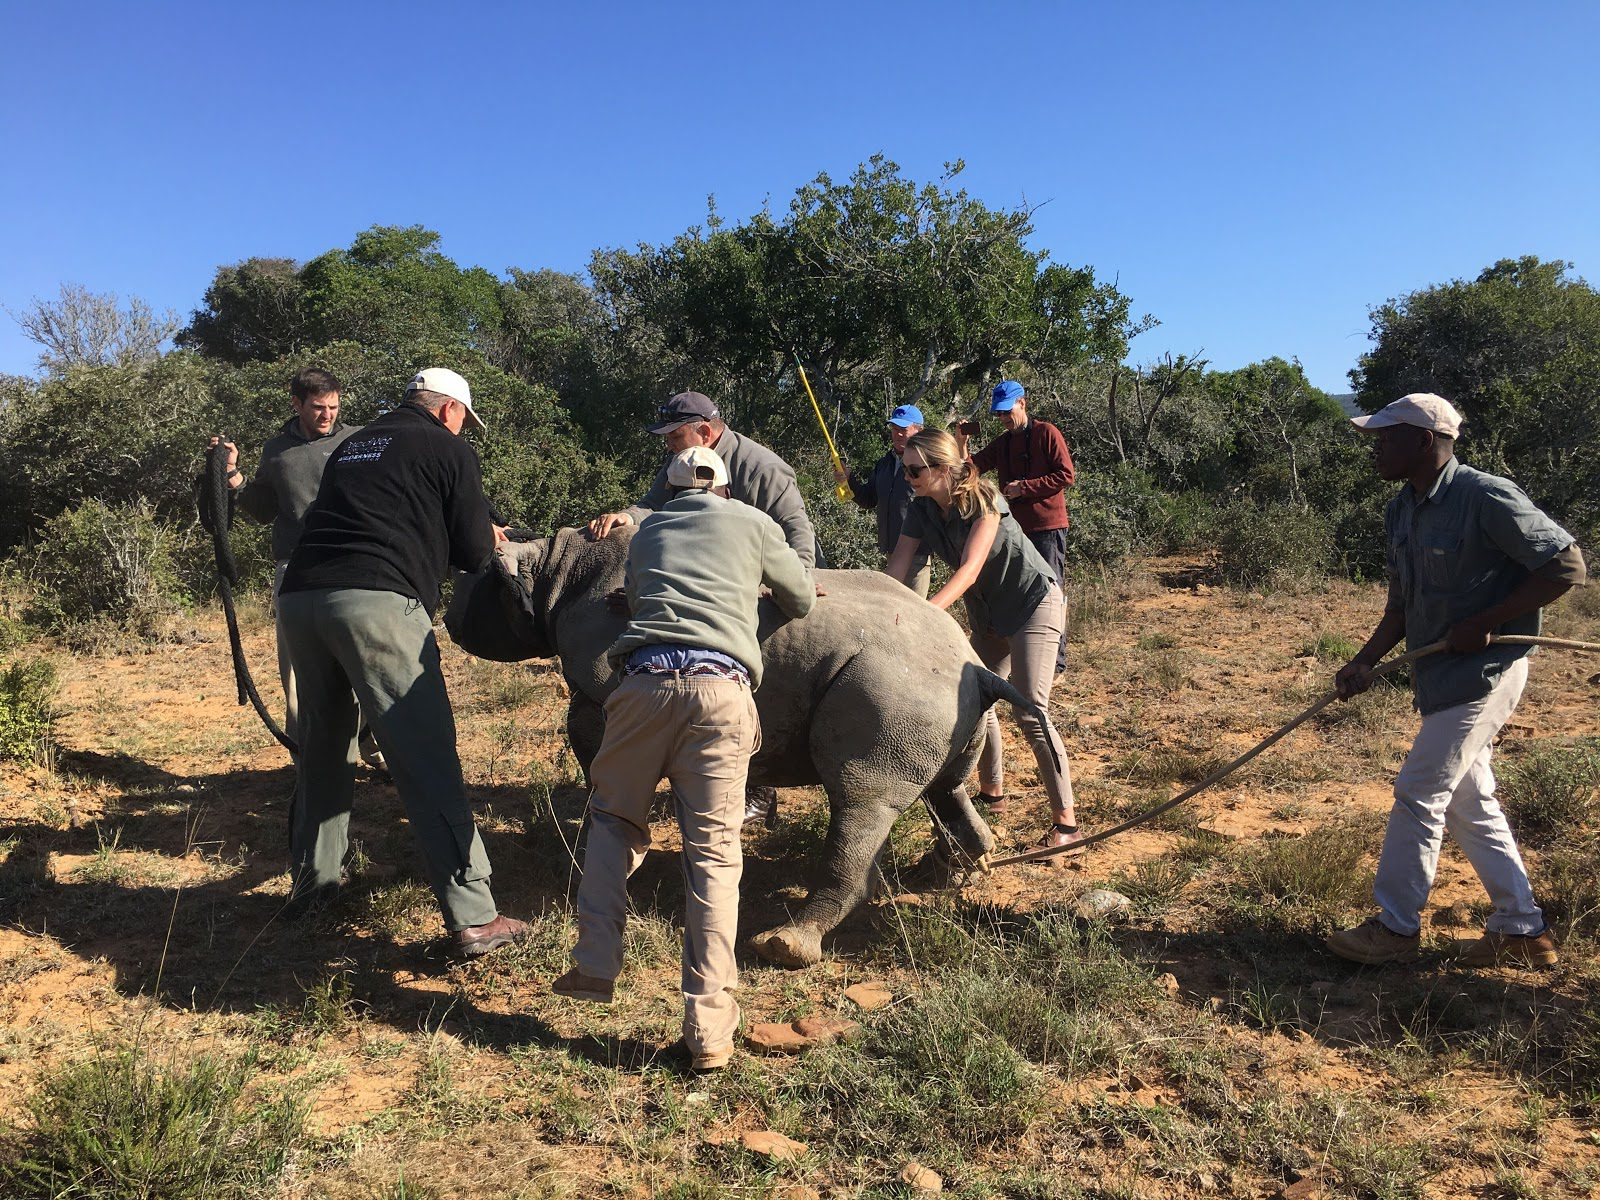 a team of conservationists guide a blindfolded rhino safely to its feet as the anesthesia wears off post-tagging on a conservation safari